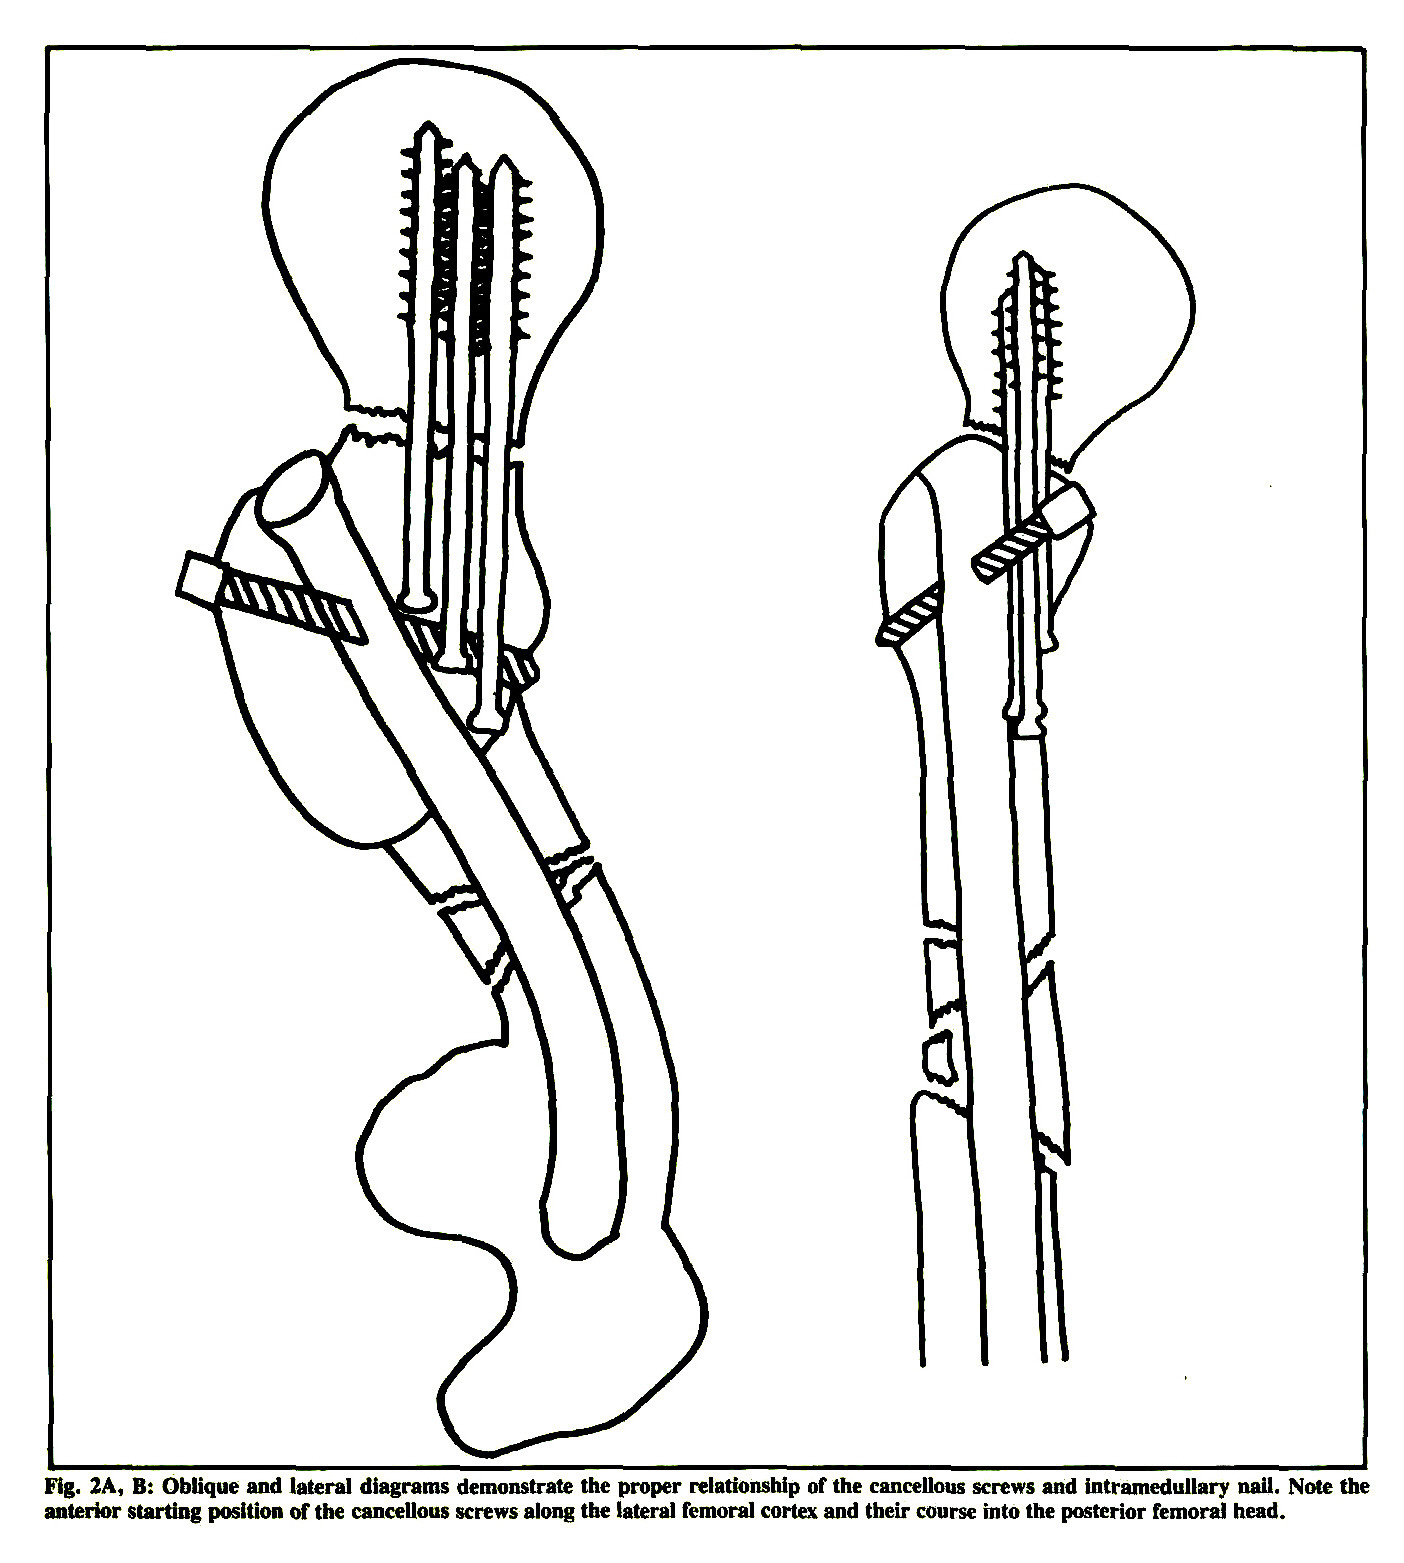 Concomitant Ipsilateral Fractures Of The Hip And Femur Treated With Interlocking Nails